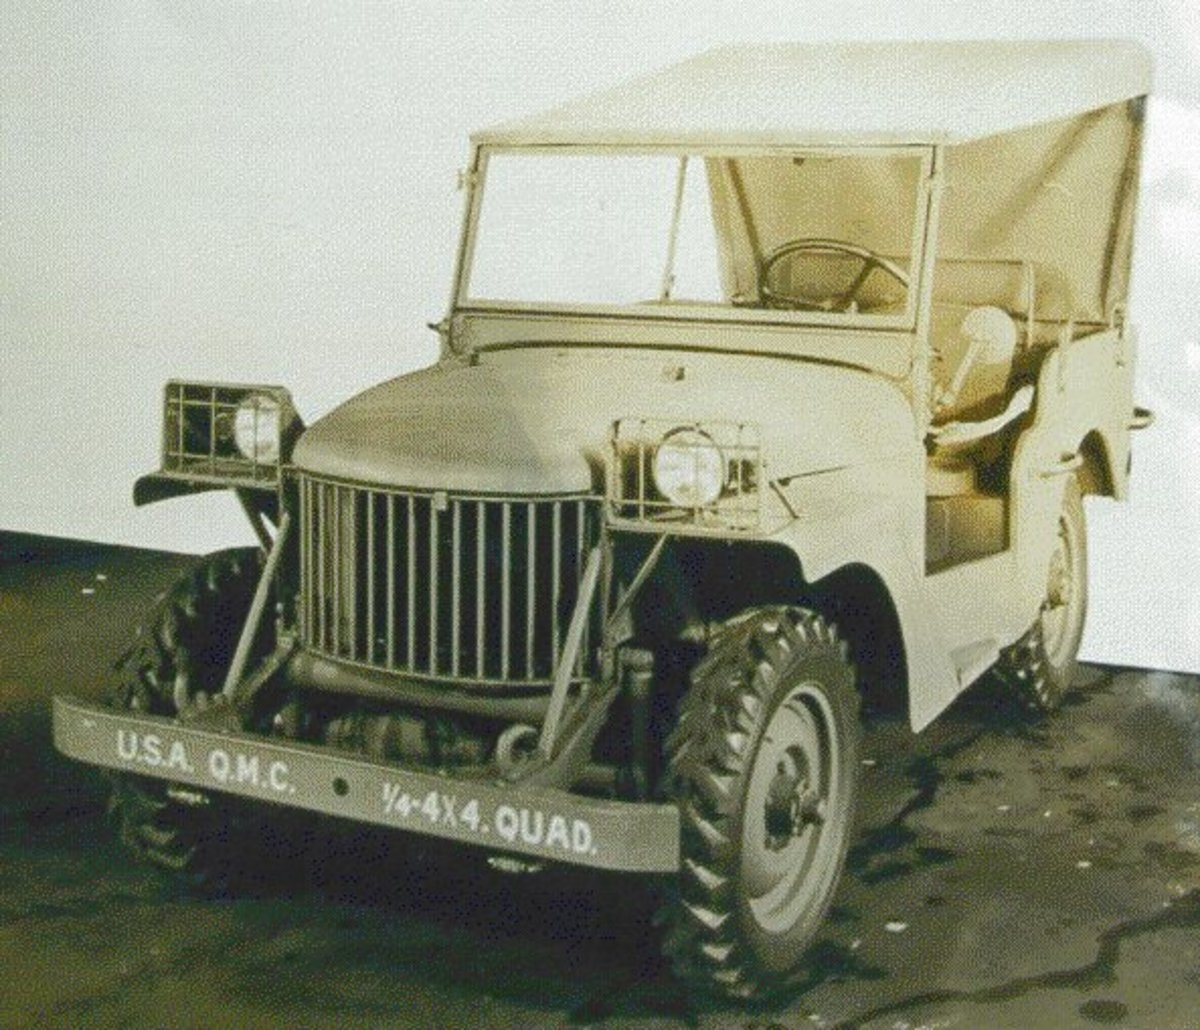 """Willys prototype that it delivered to the Army in 1940 was known as the """"Quad."""""""